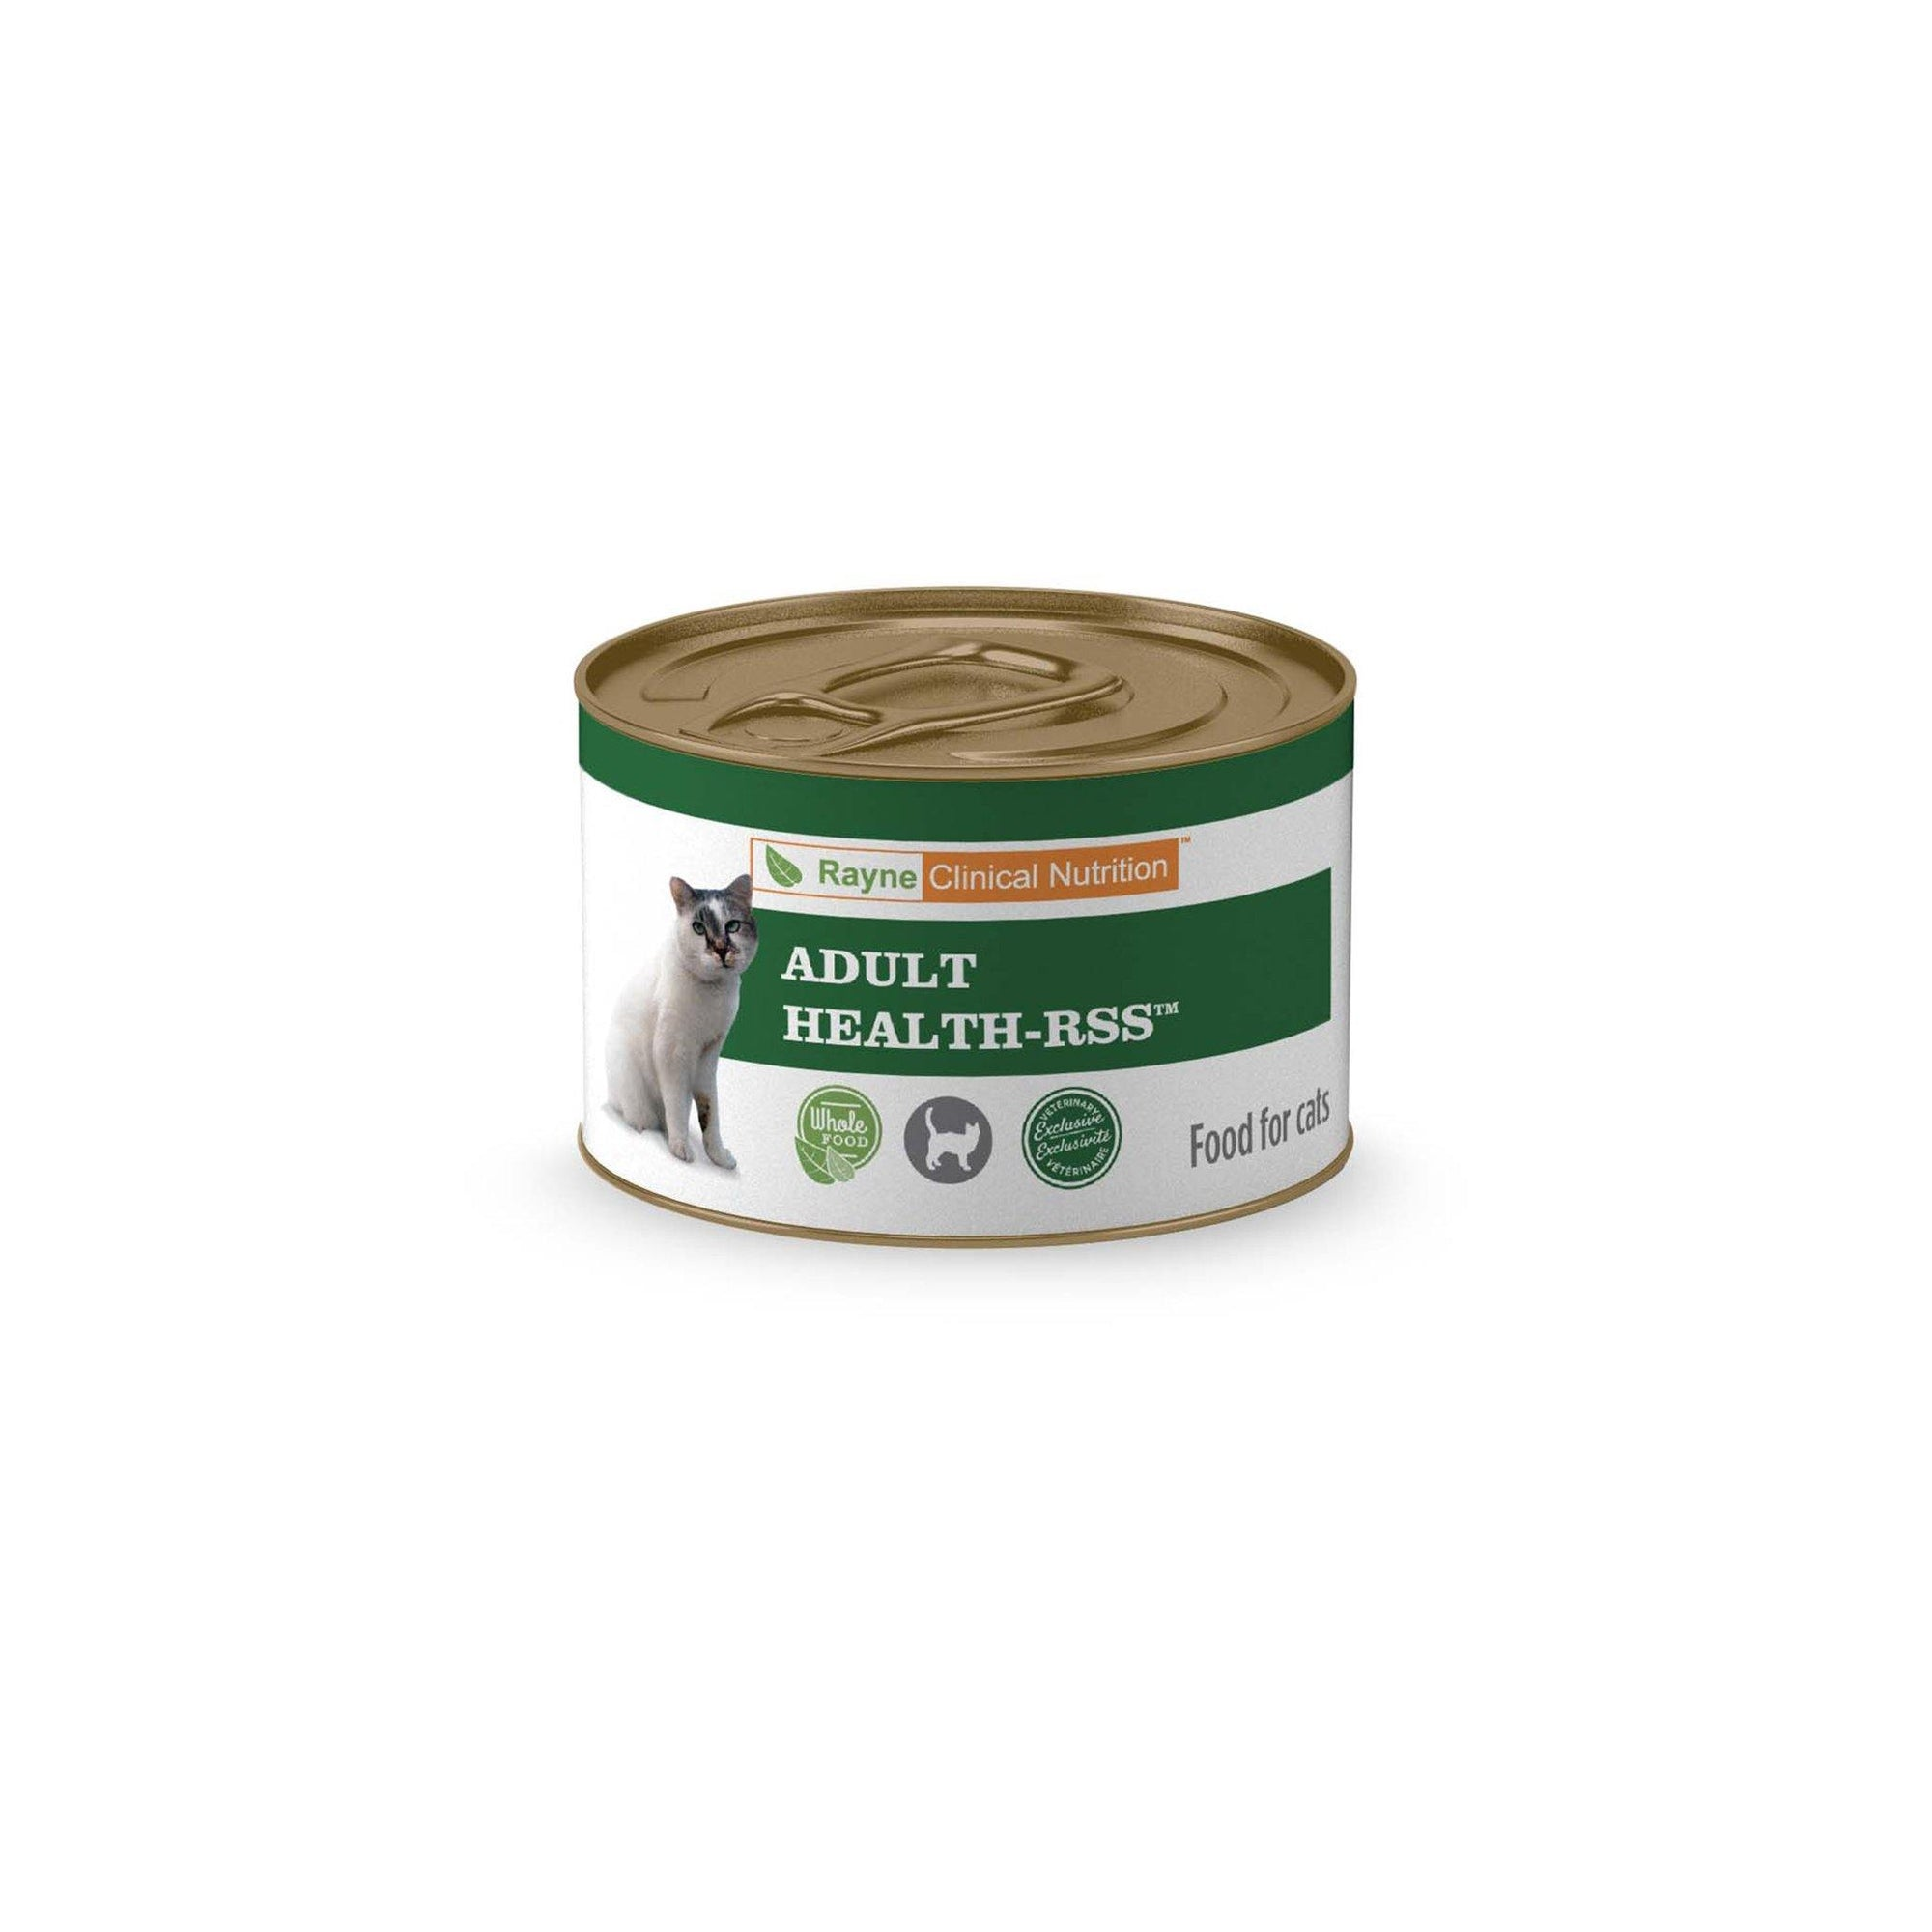 Adult Health-RSS Feline Cans